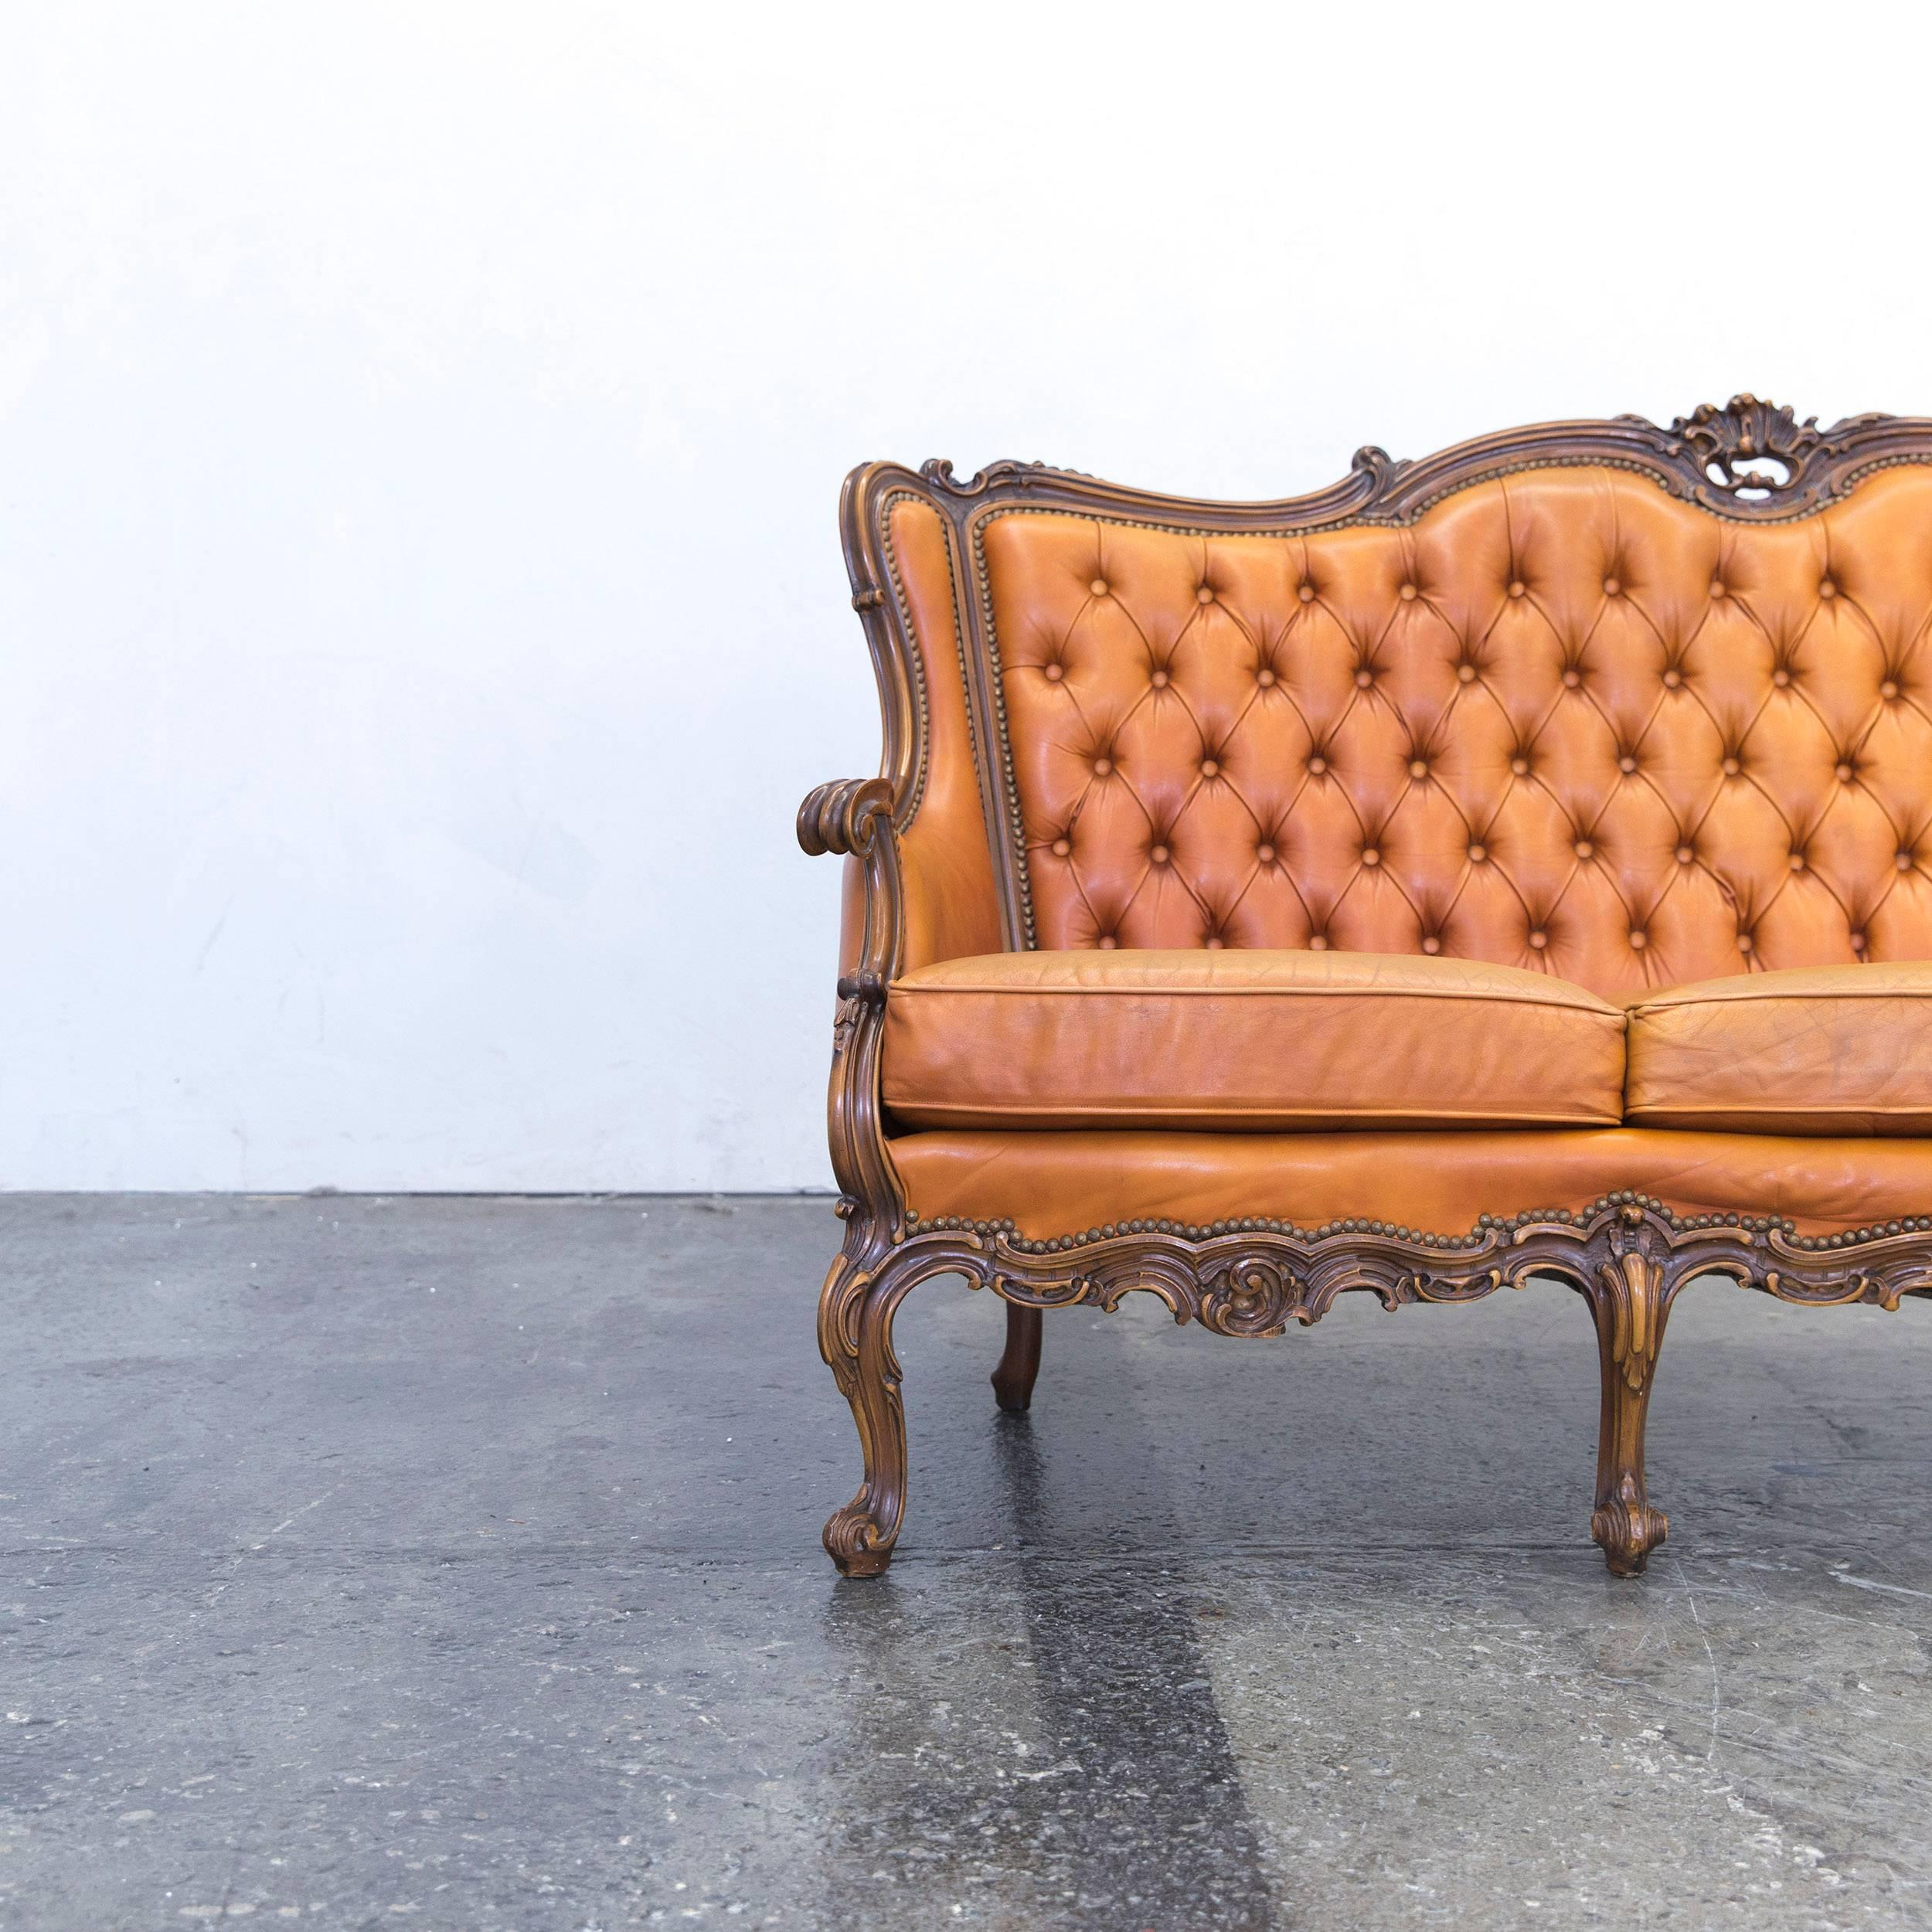 Cognac Brown Colored Original Chesterfield Leather Sofa In A Vintage  Design, Made For Pure Comfort